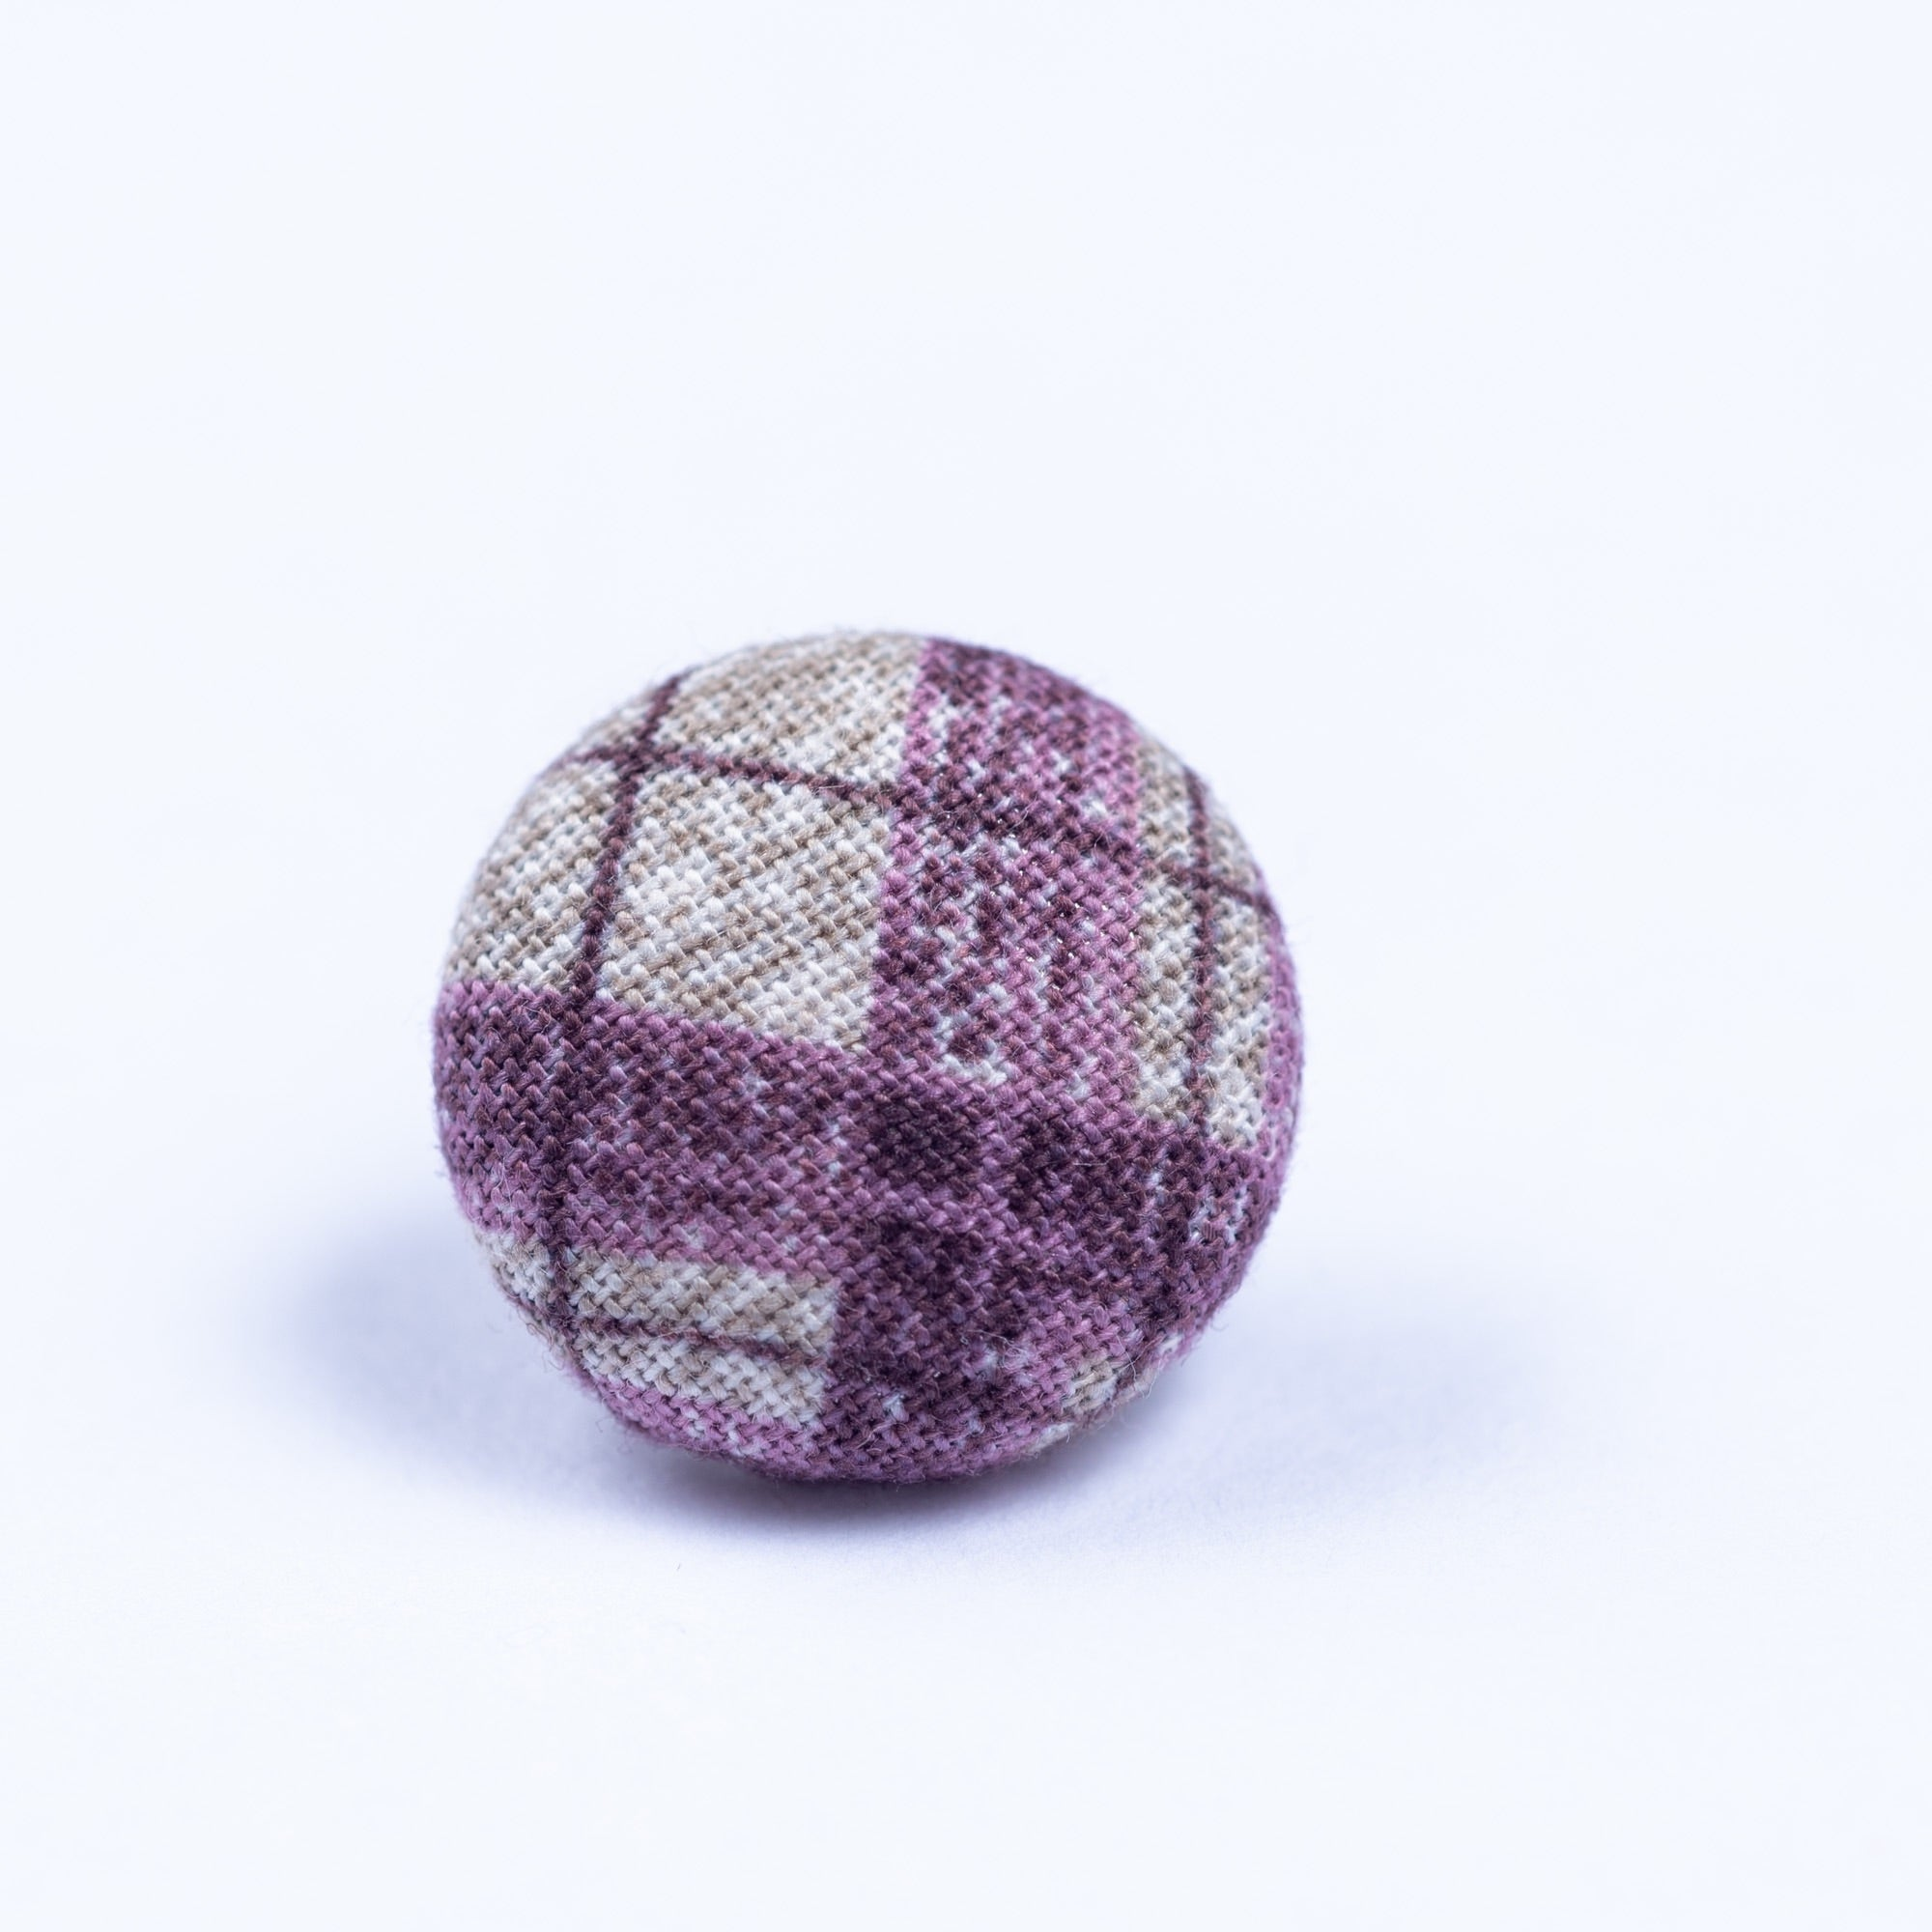 purple and white lapel pin - Oxford Square